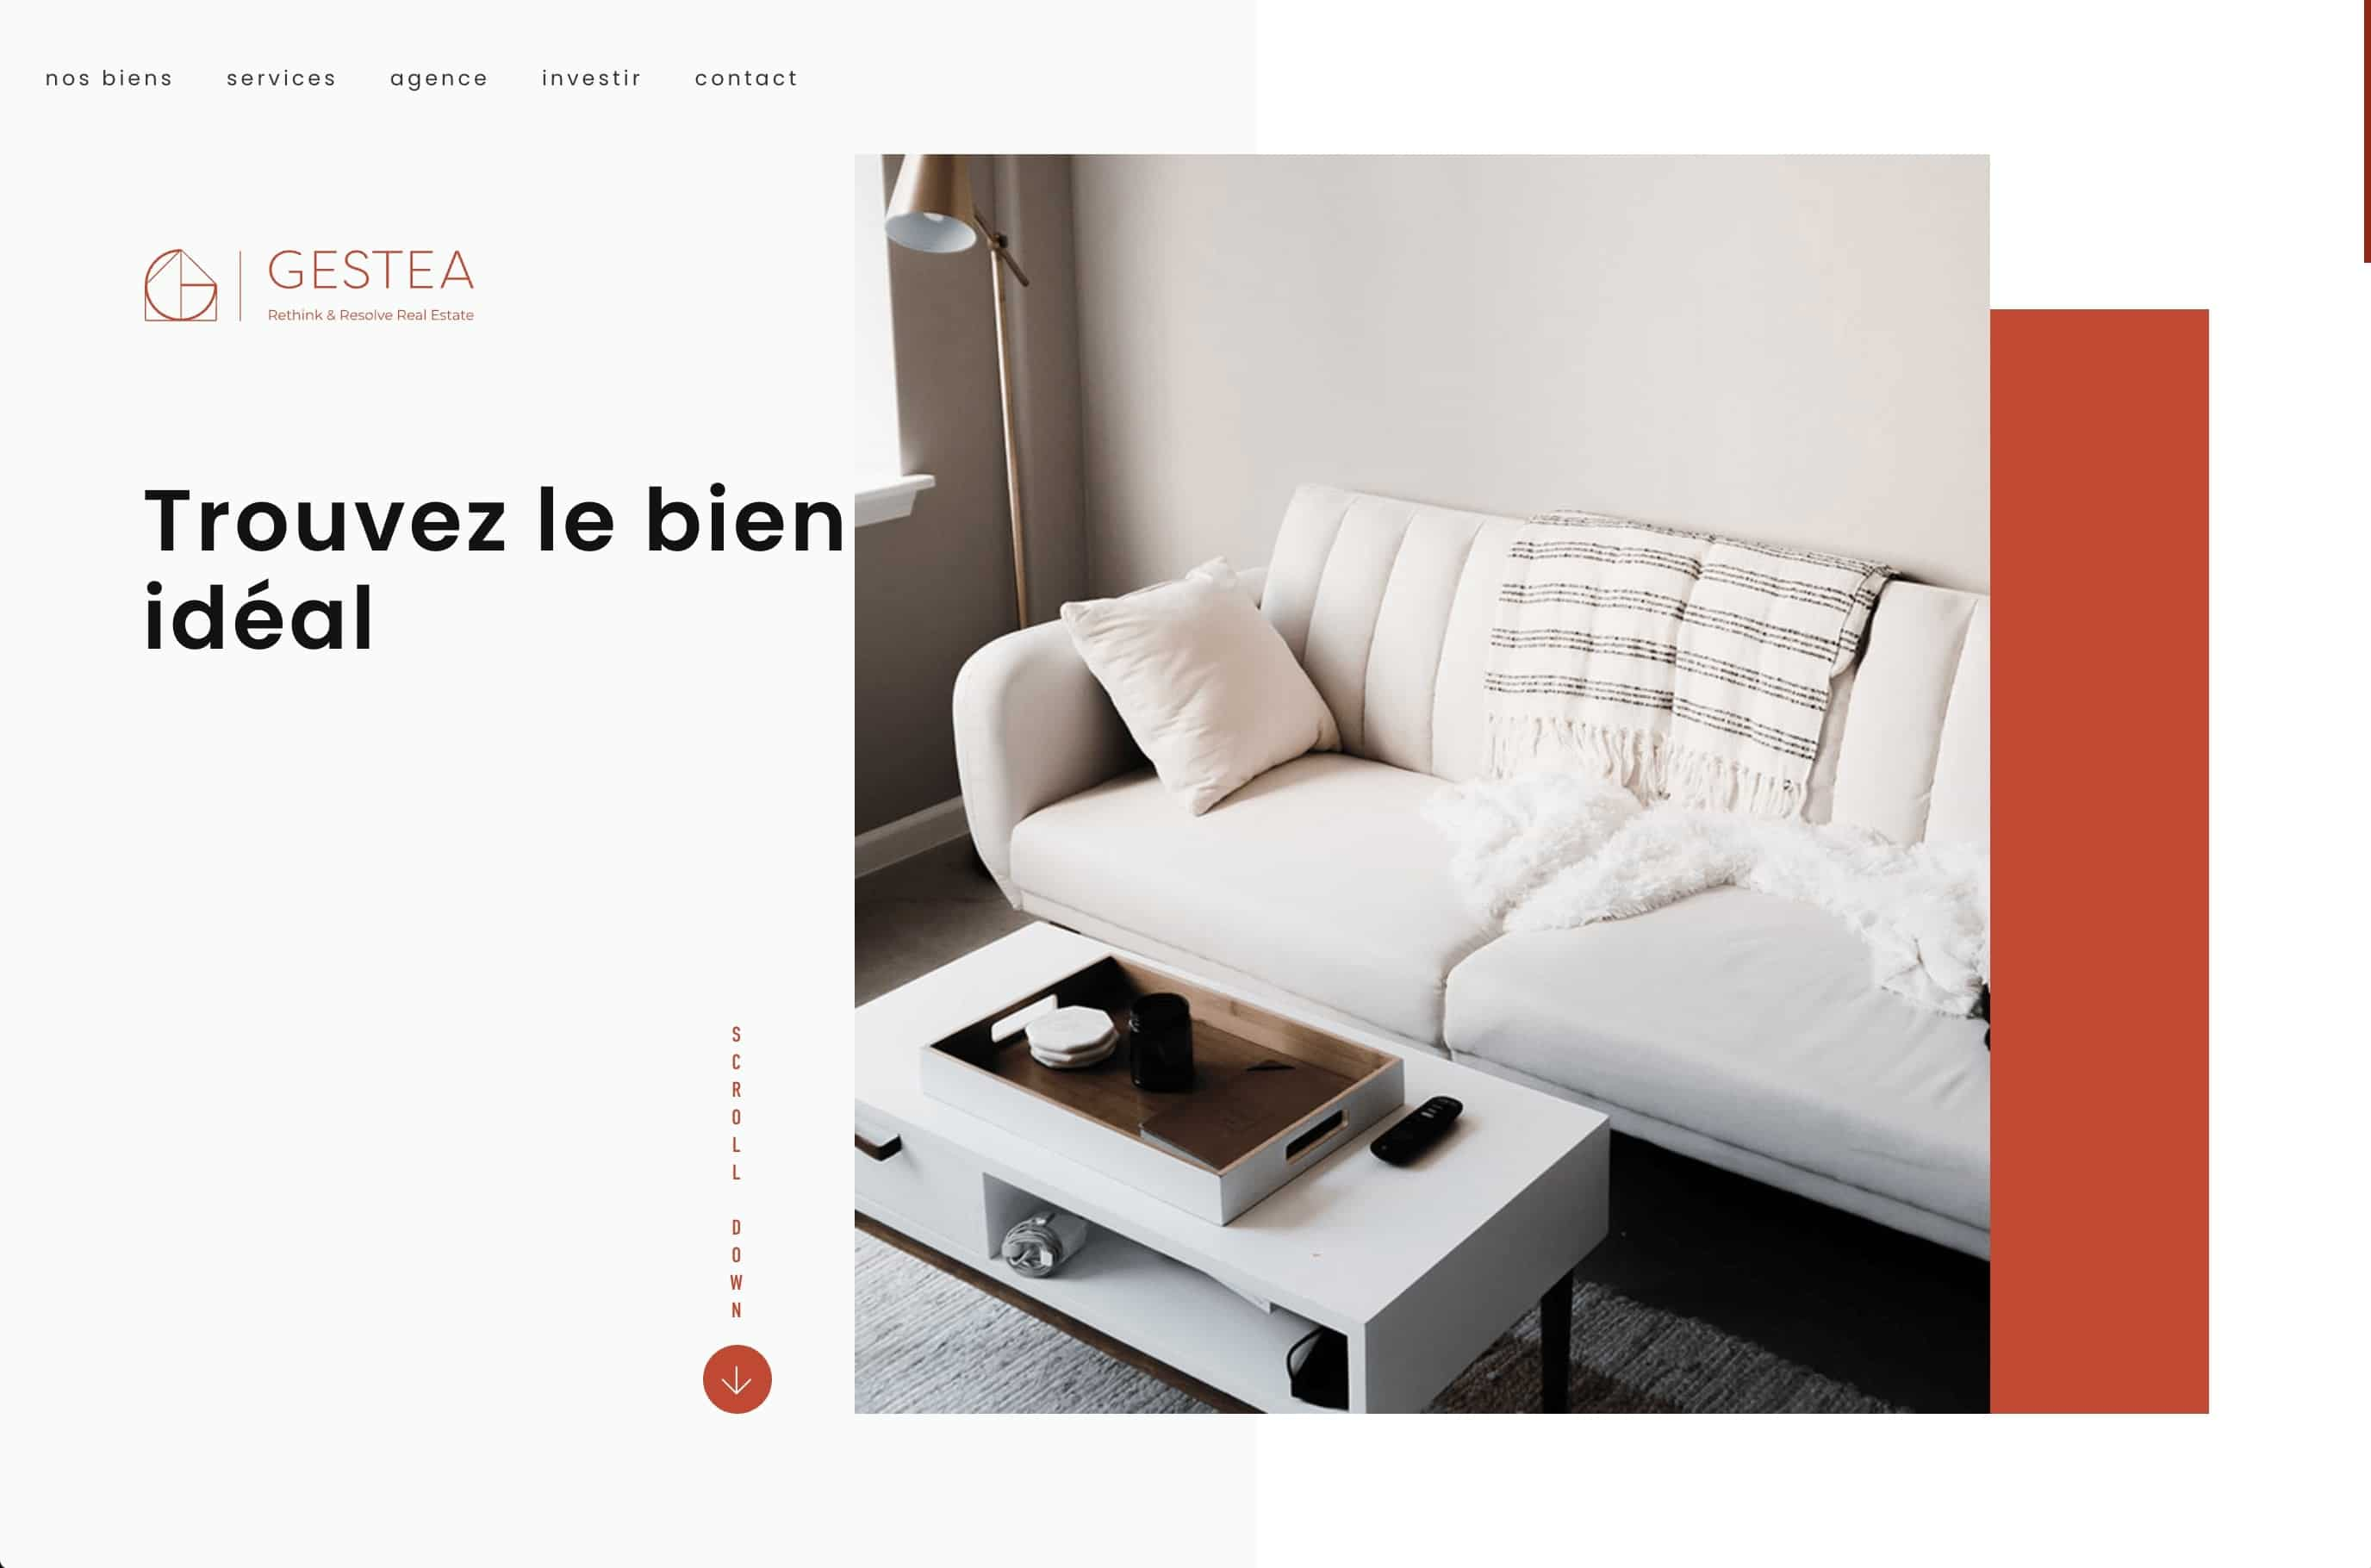 Hot web design trends: Overlapping elements by Gestea | Codica